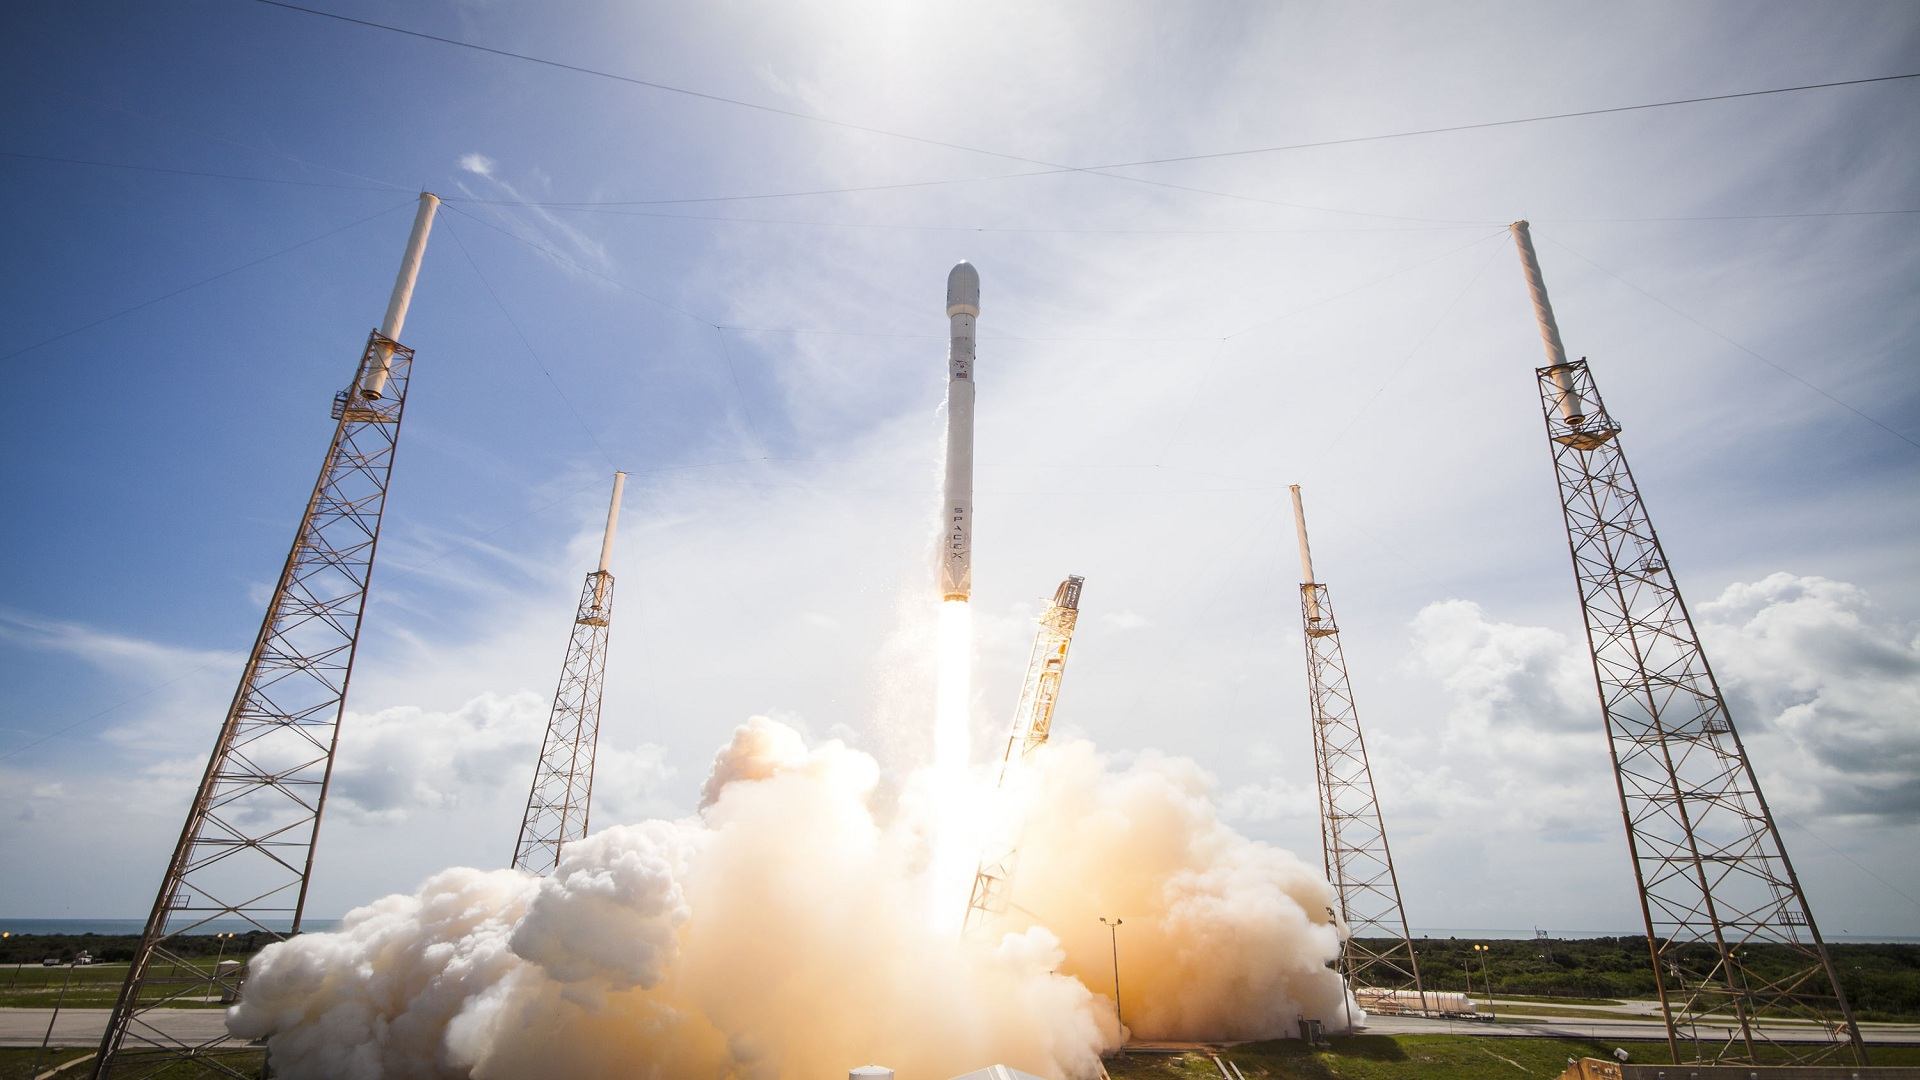 spacex rocket taking off widescreen wallpaper 260